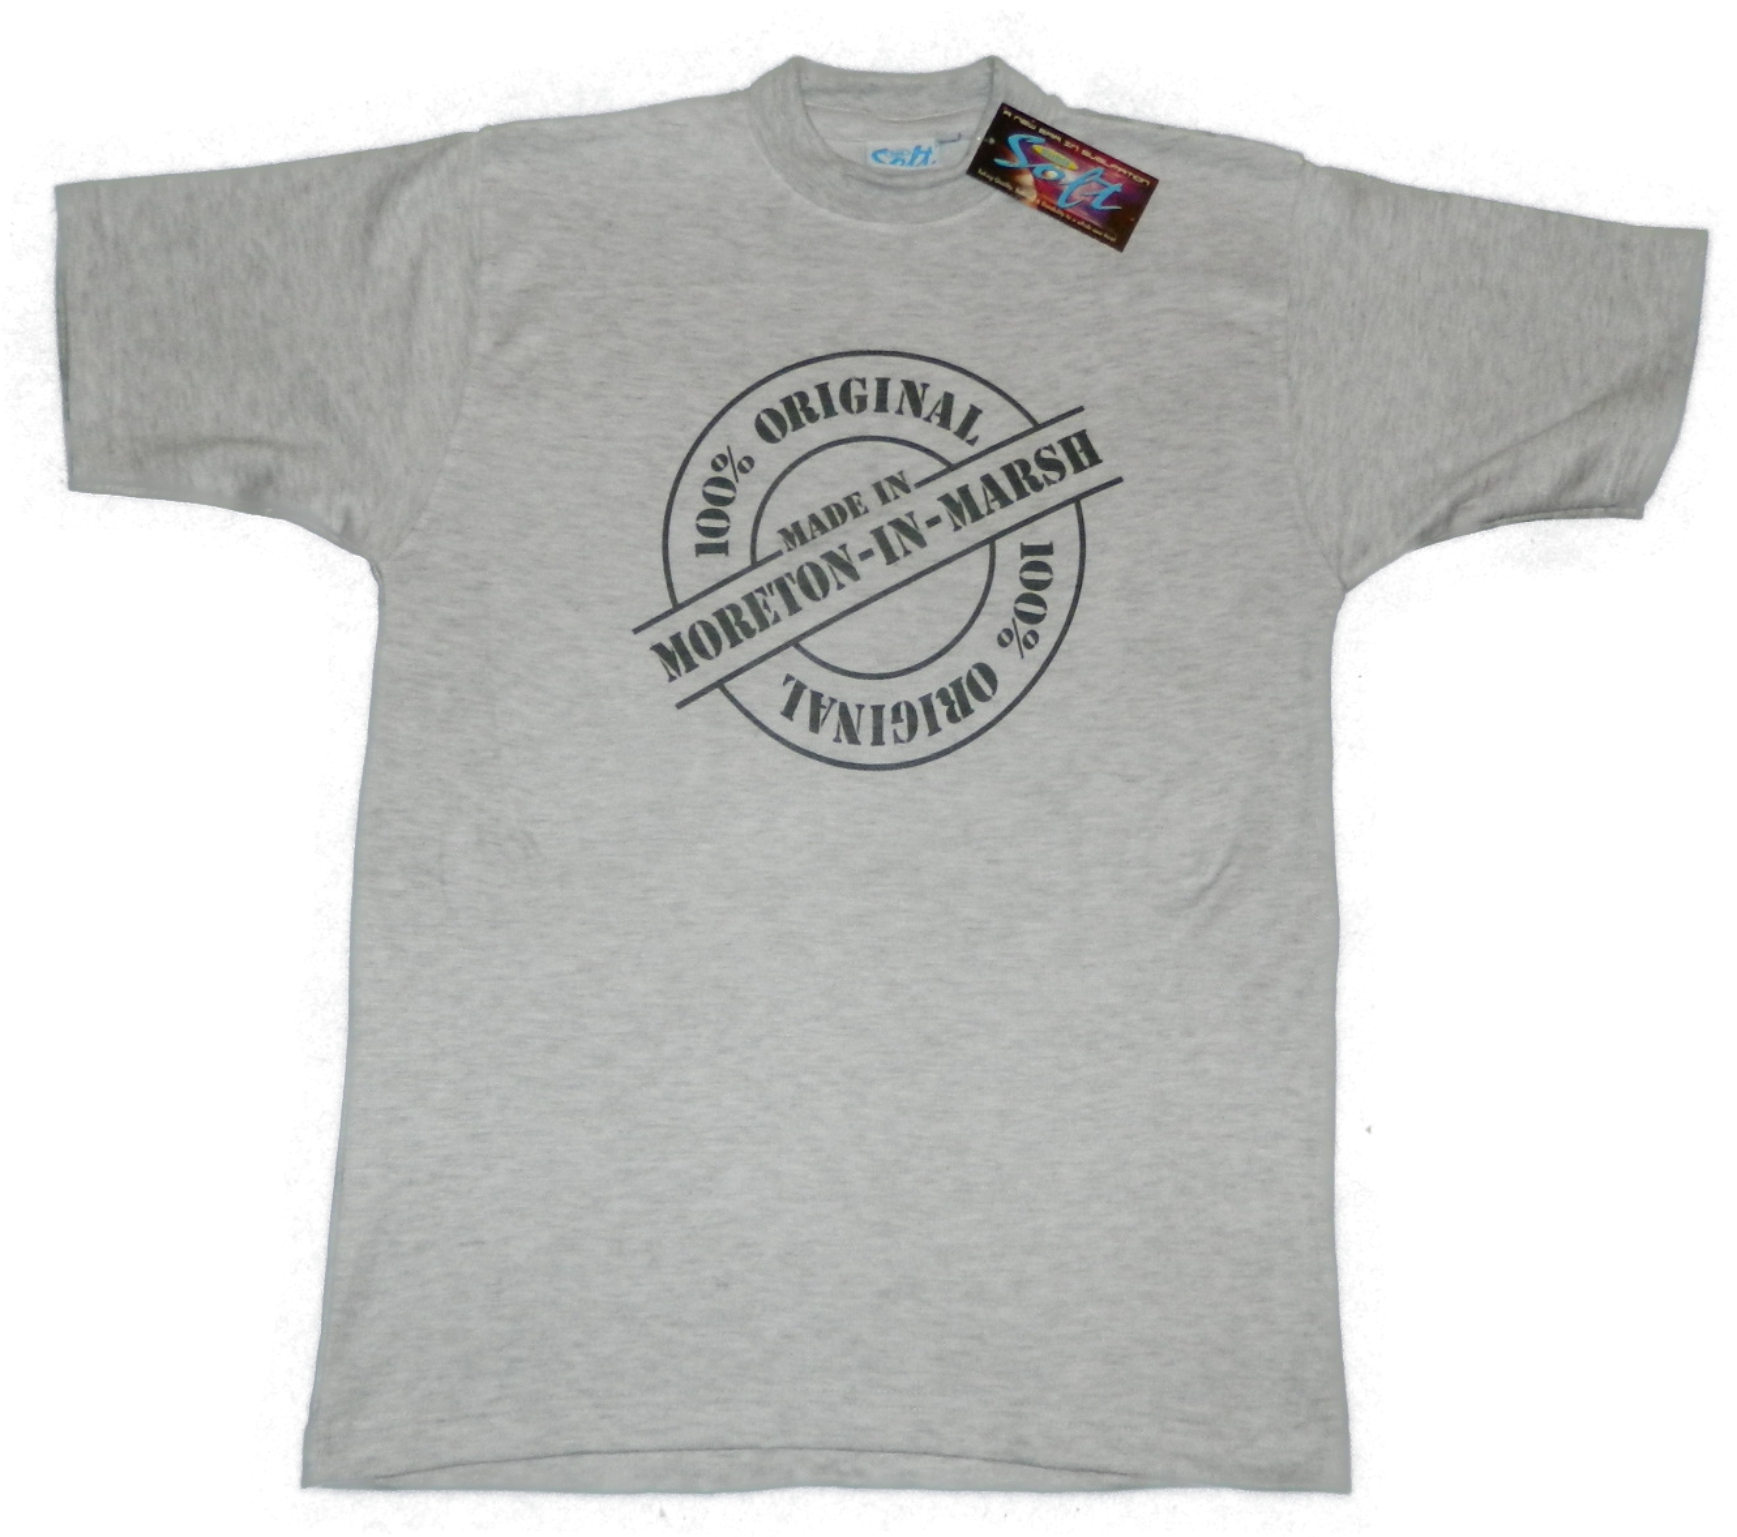 100% Original T-Shirt - Grey